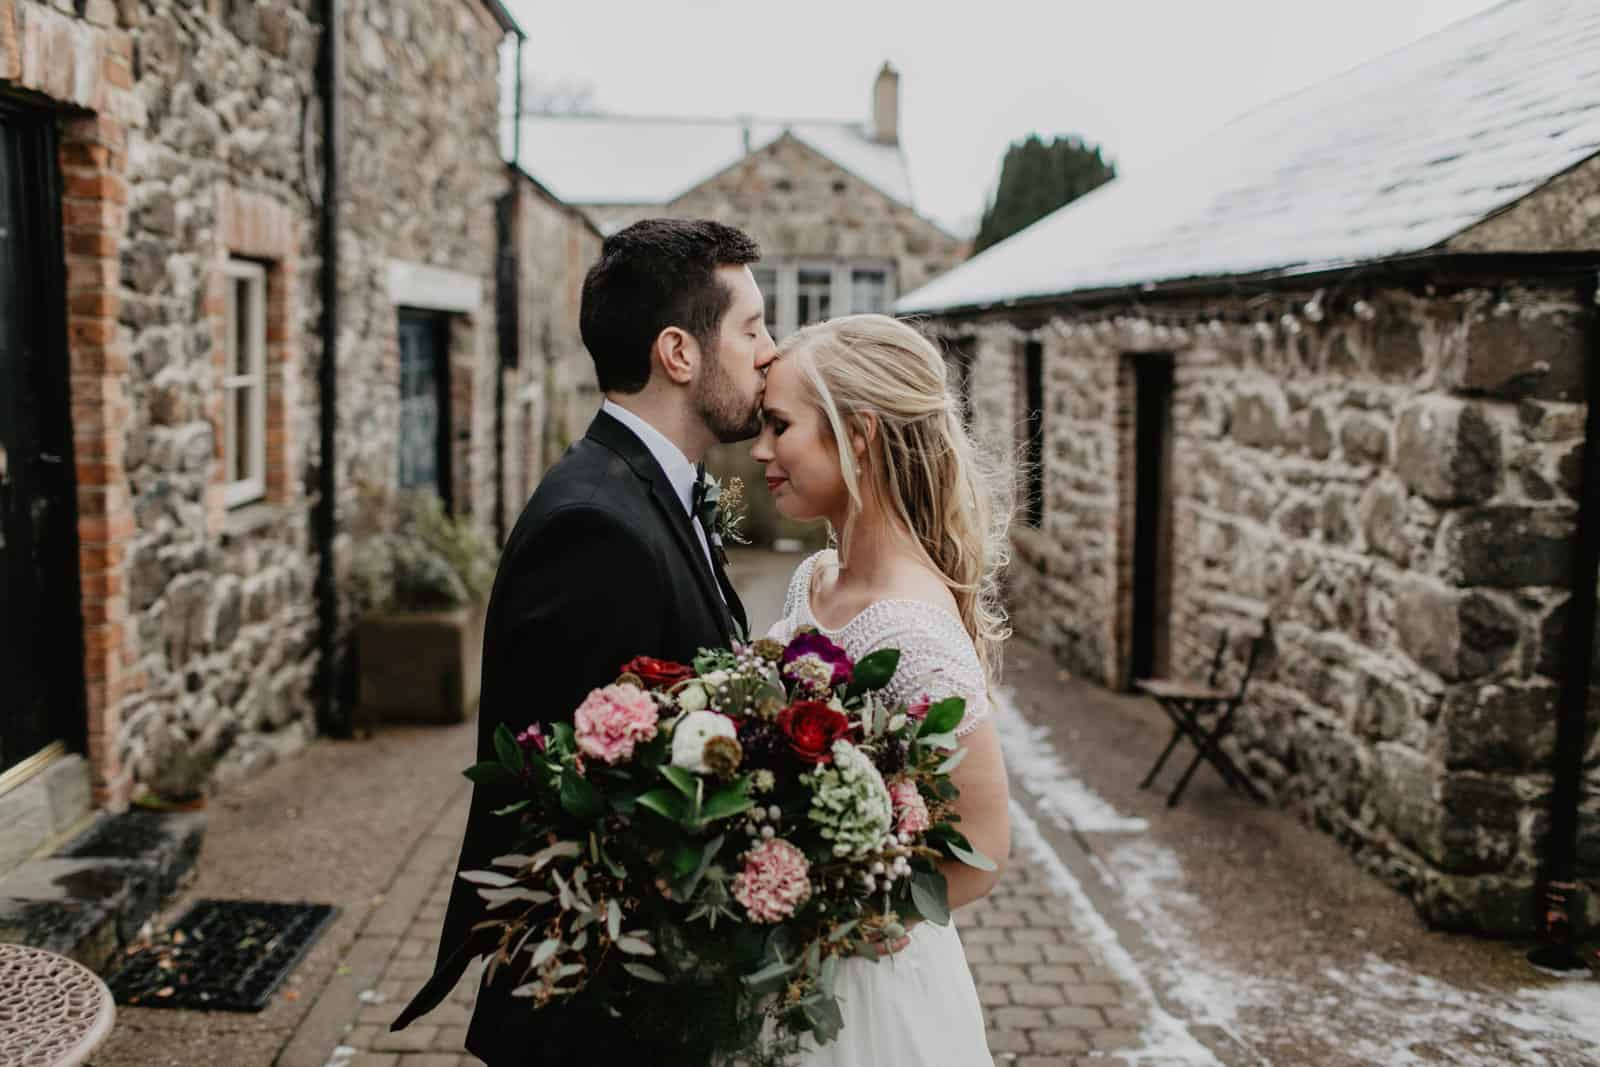 Dotty and Seamus - Limepark Cottages